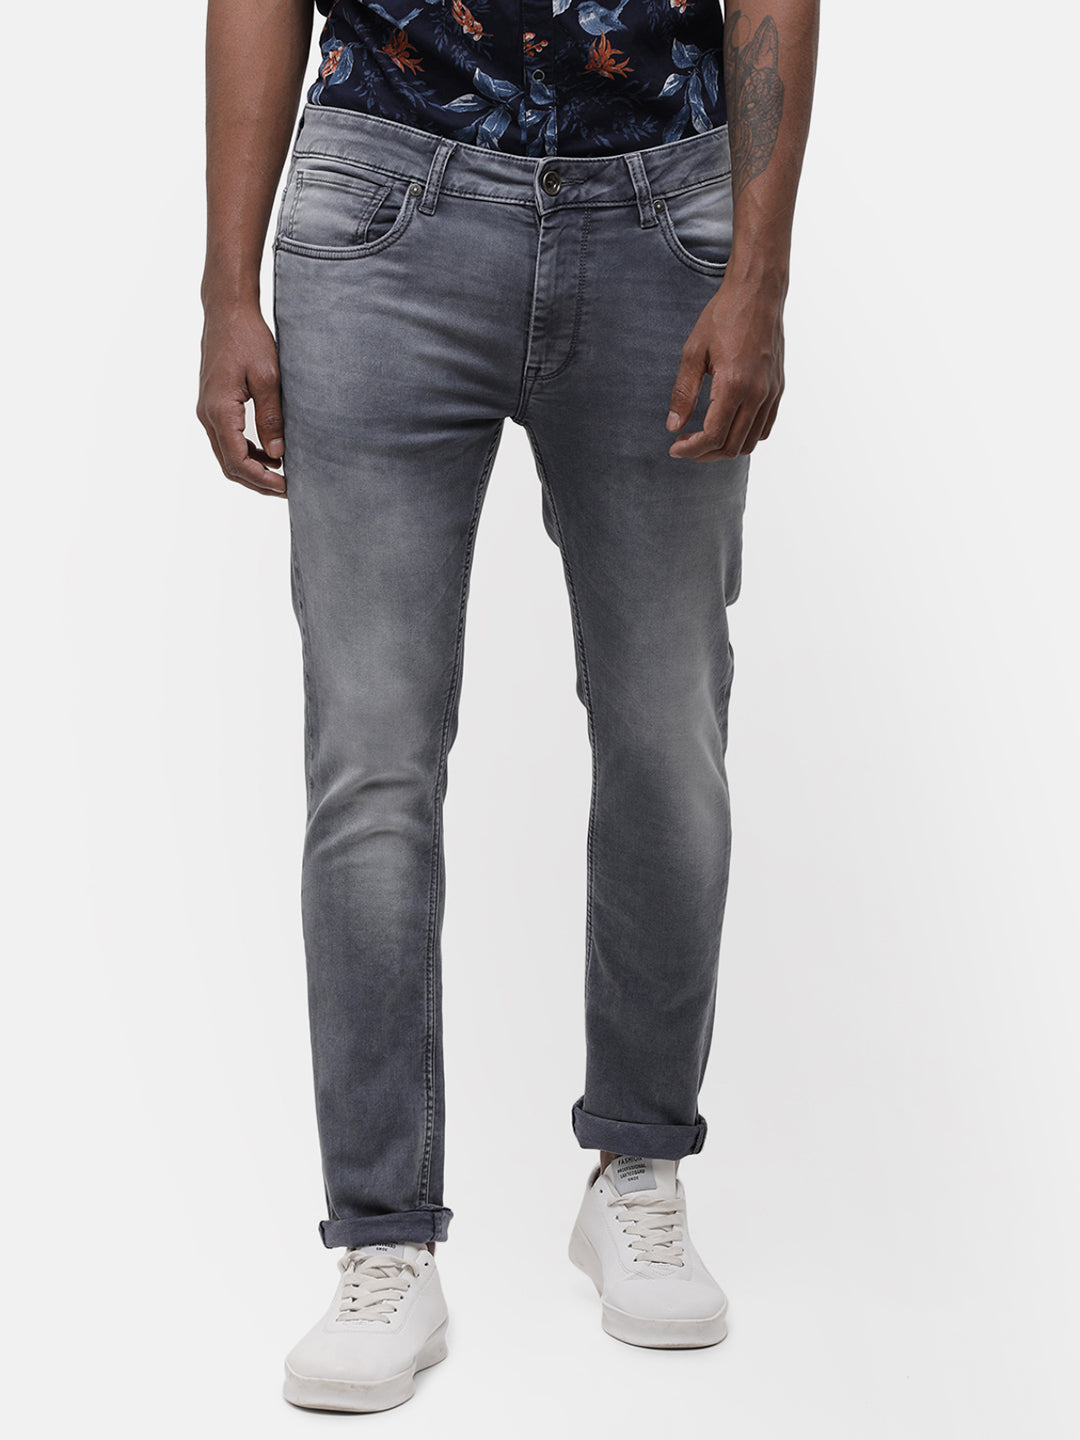 Men's light-mid gray faded denim